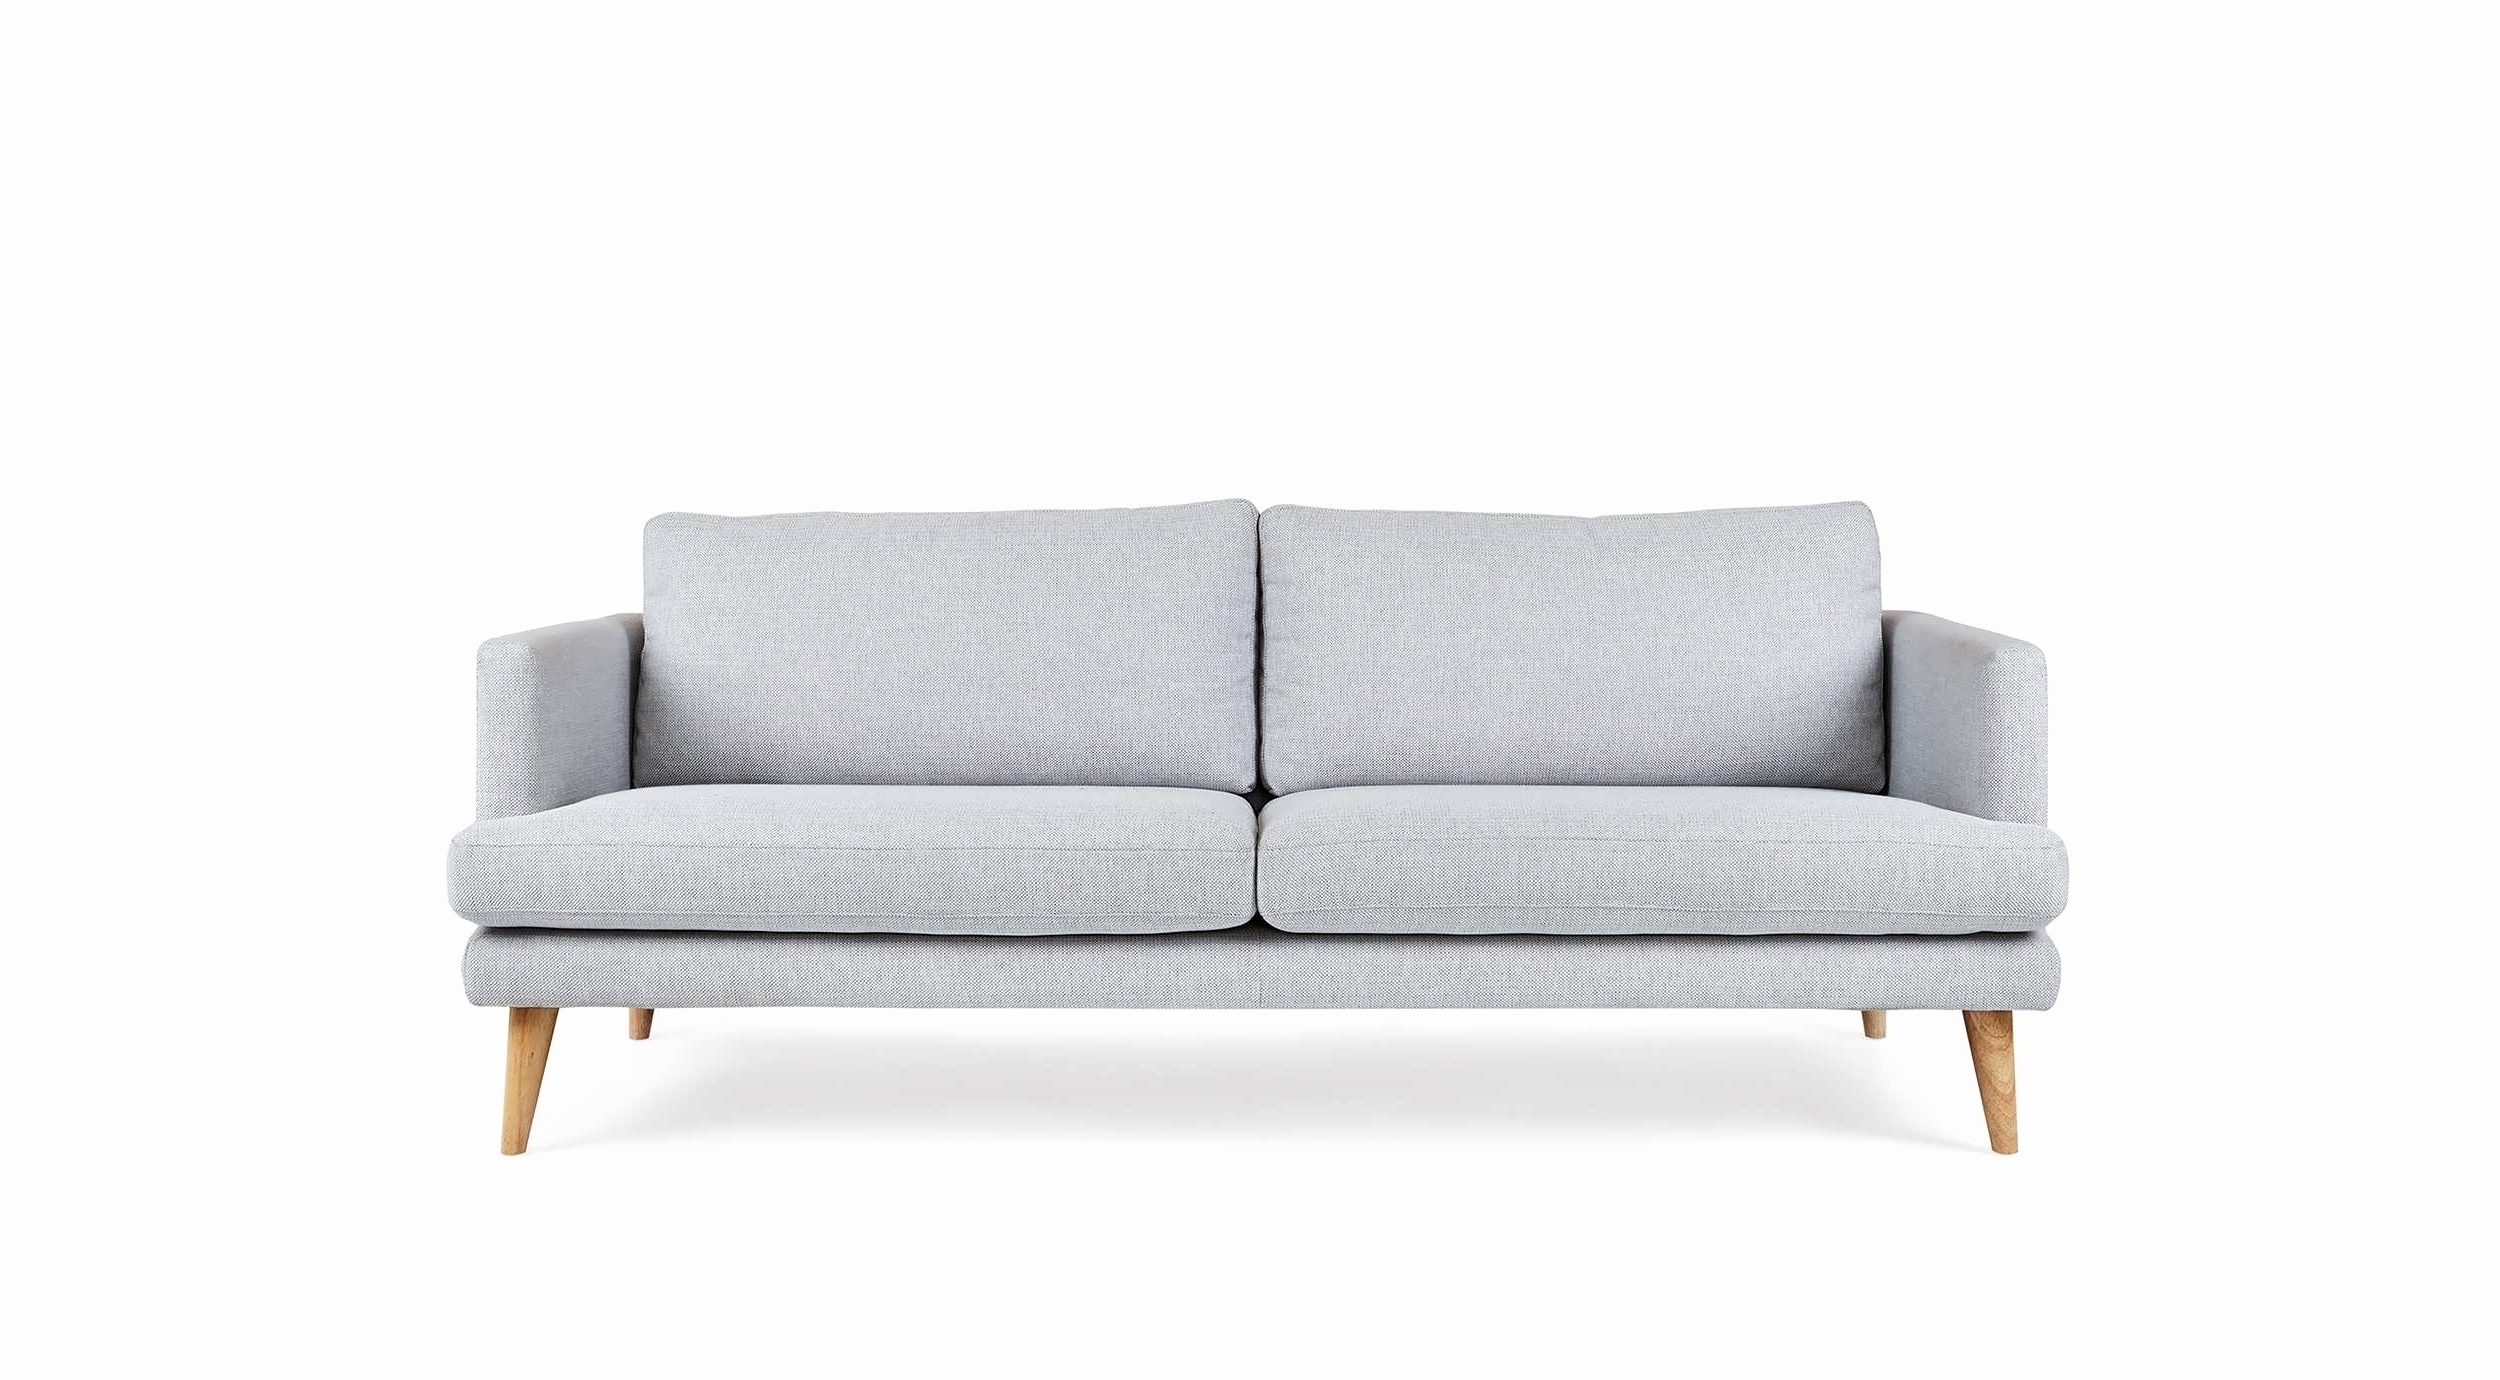 Newest Cheap Single Sofas In Luxury Pull Out Double Sofa Bed 2018 – Couches And Sofas Ideas (View 6 of 15)